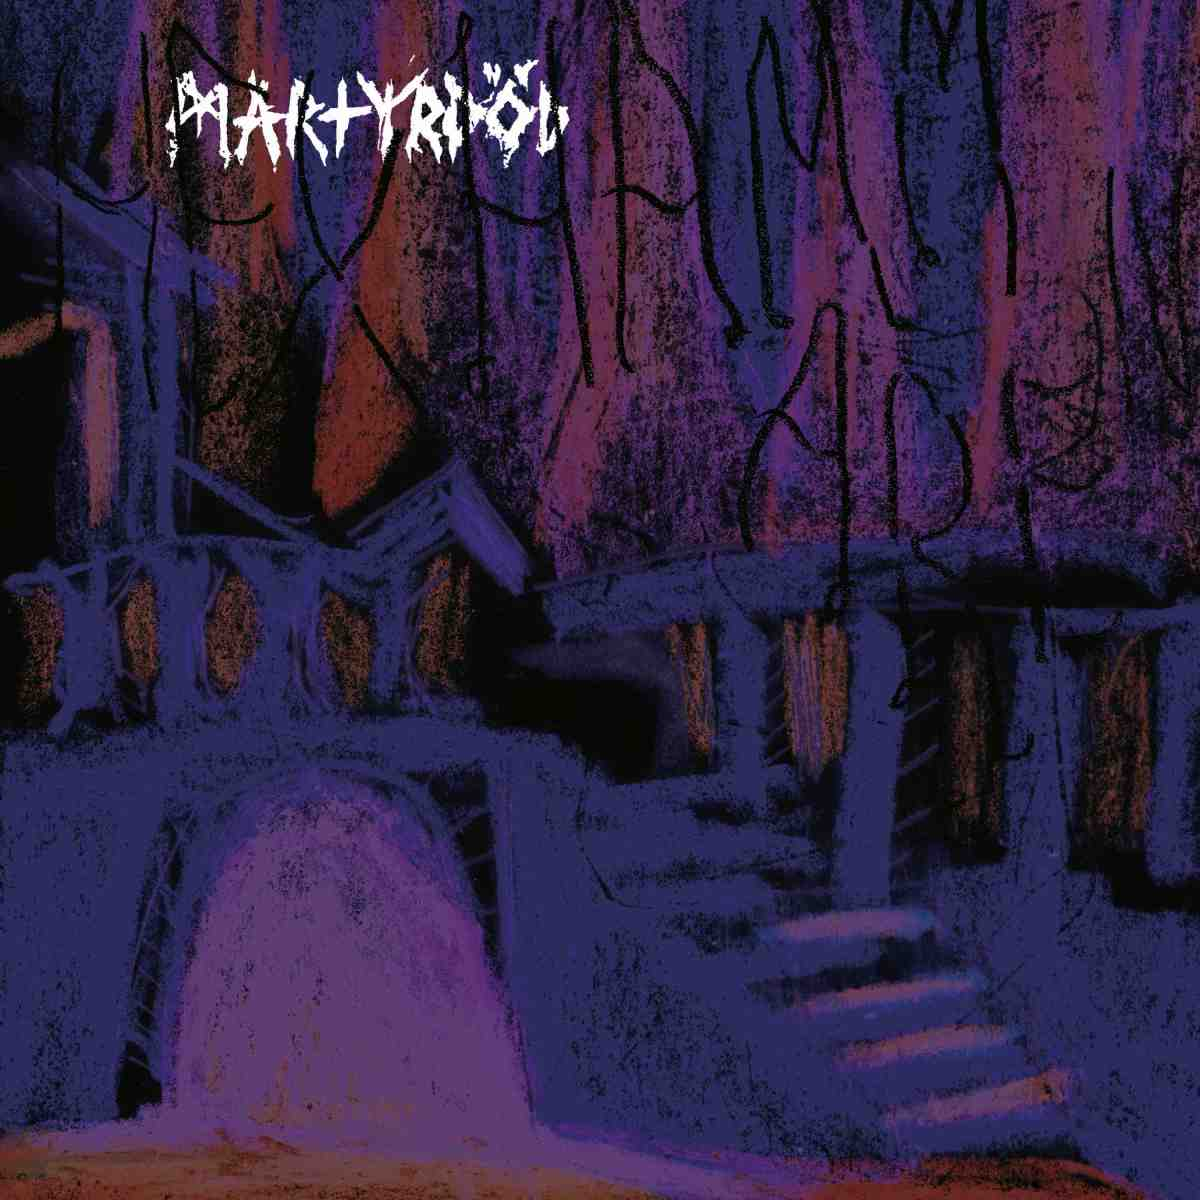 CD review MARTYRDÖD 'Hexhammaren'